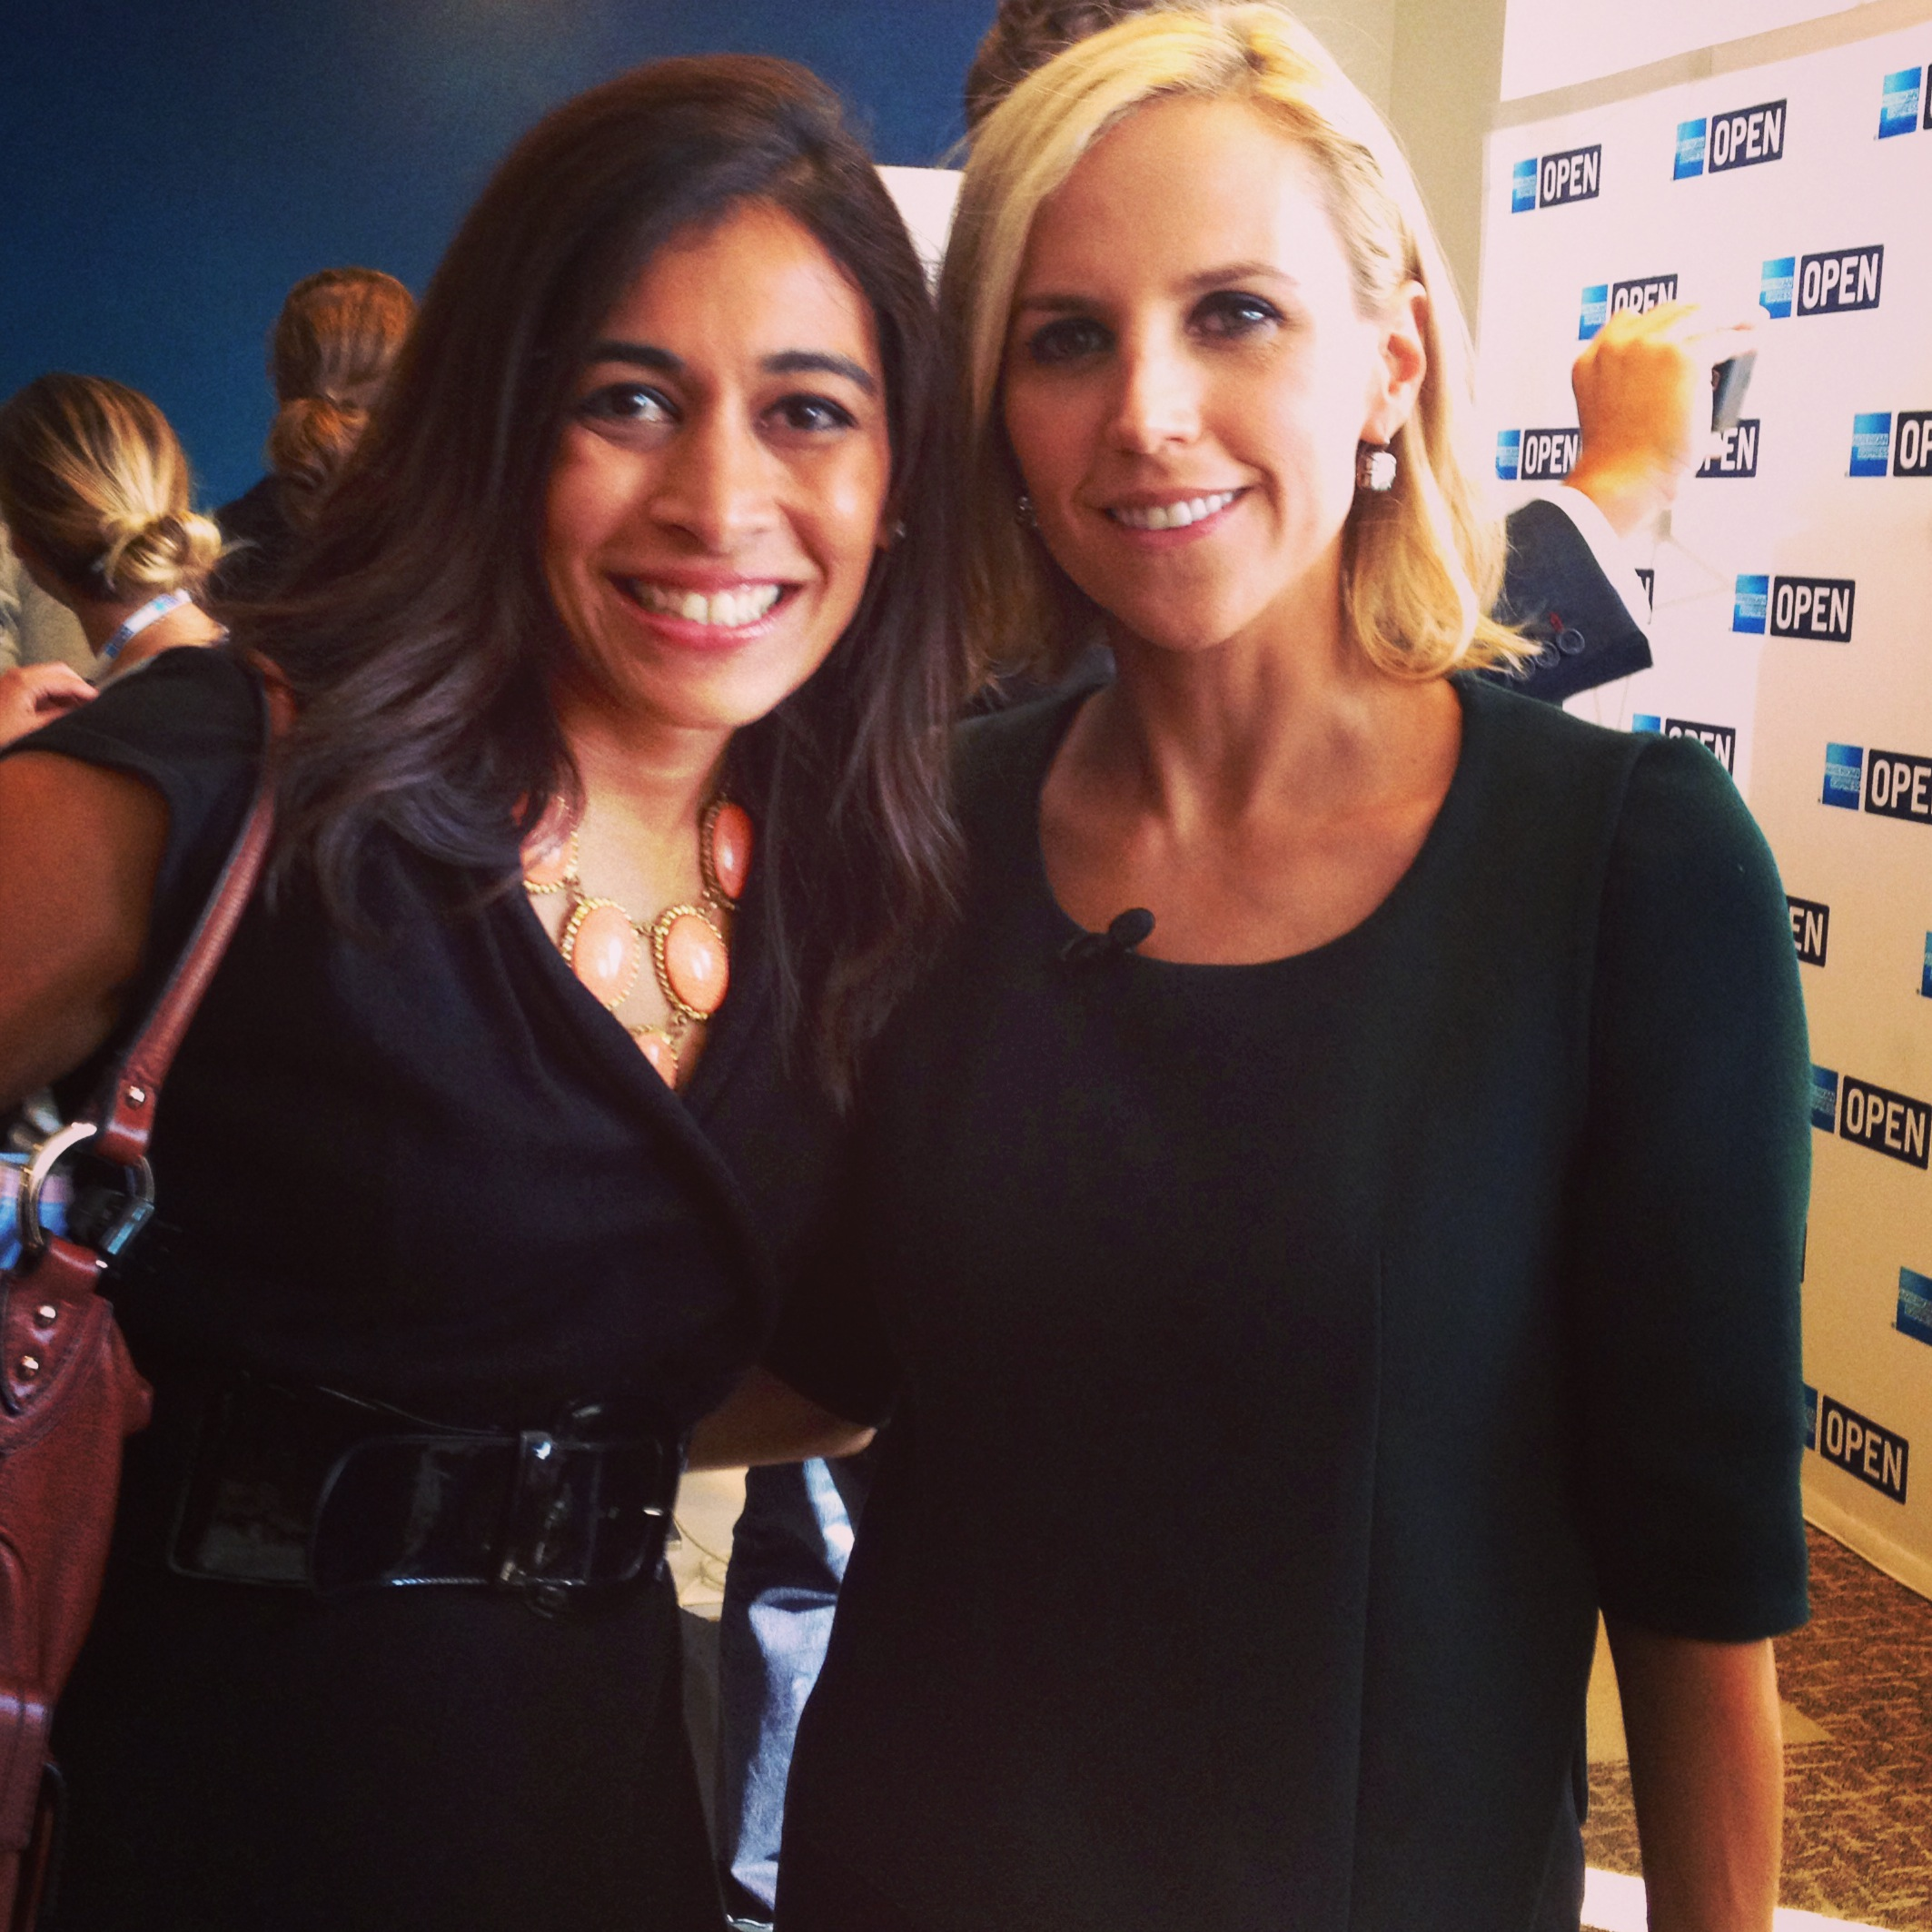 7 Inspirational Quotes From Successful Women Business Leaders